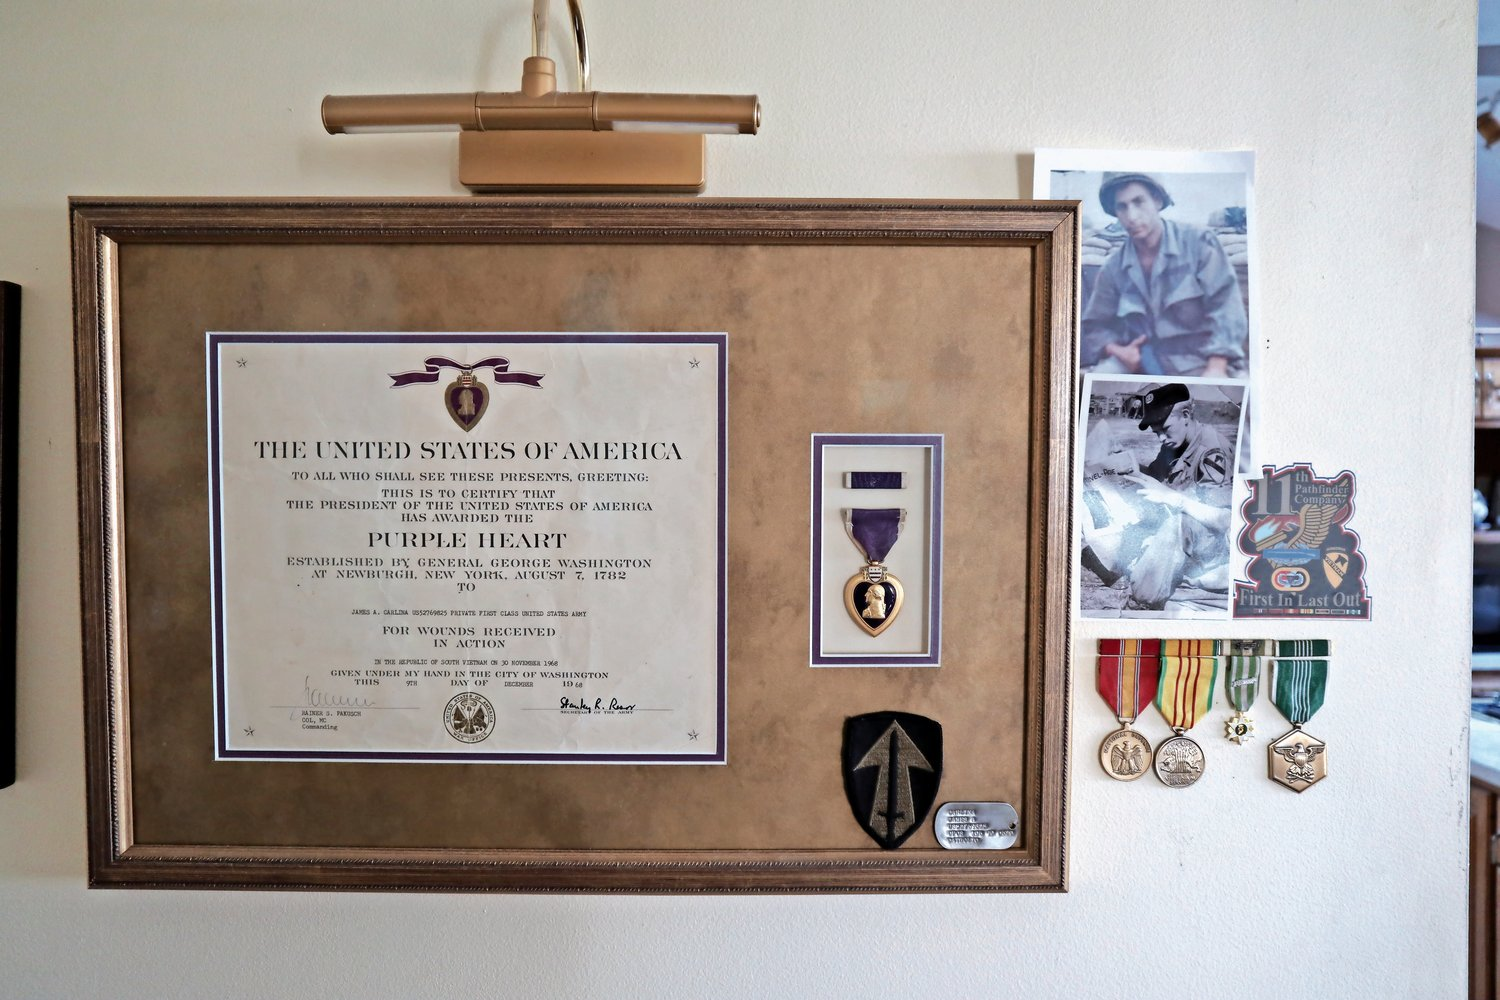 Jim Carlina's Purple Heart is framed and hangs on a wall in his home. His photo, above right, is now accompanied by one of Curtis Davis, the man who helped save Carlina's life more than 50 years ago. The two reconnected earlier this year.